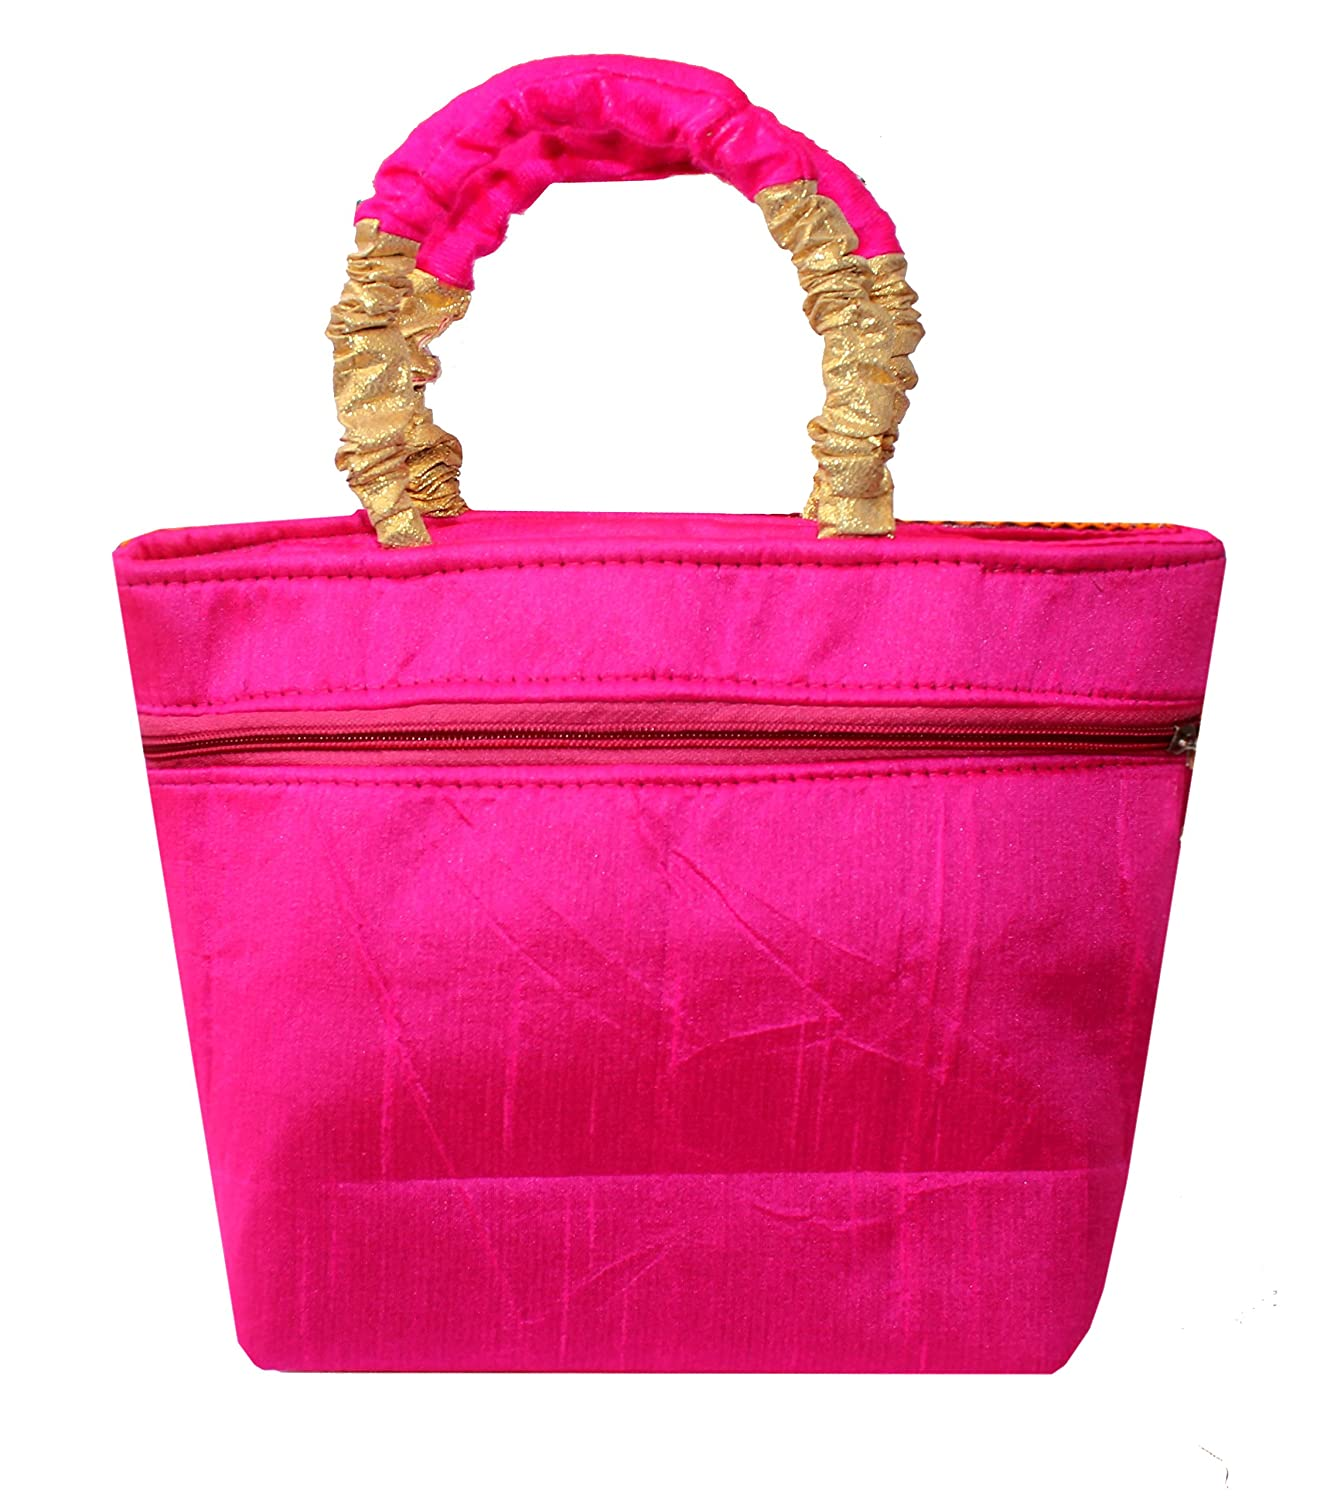 1f55dbce6a Milan's Creation Women's Pink Silk Hanbag With Kashmiri Floral Embroidery  and Velvet Handles: Amazon.in: Shoes & Handbags